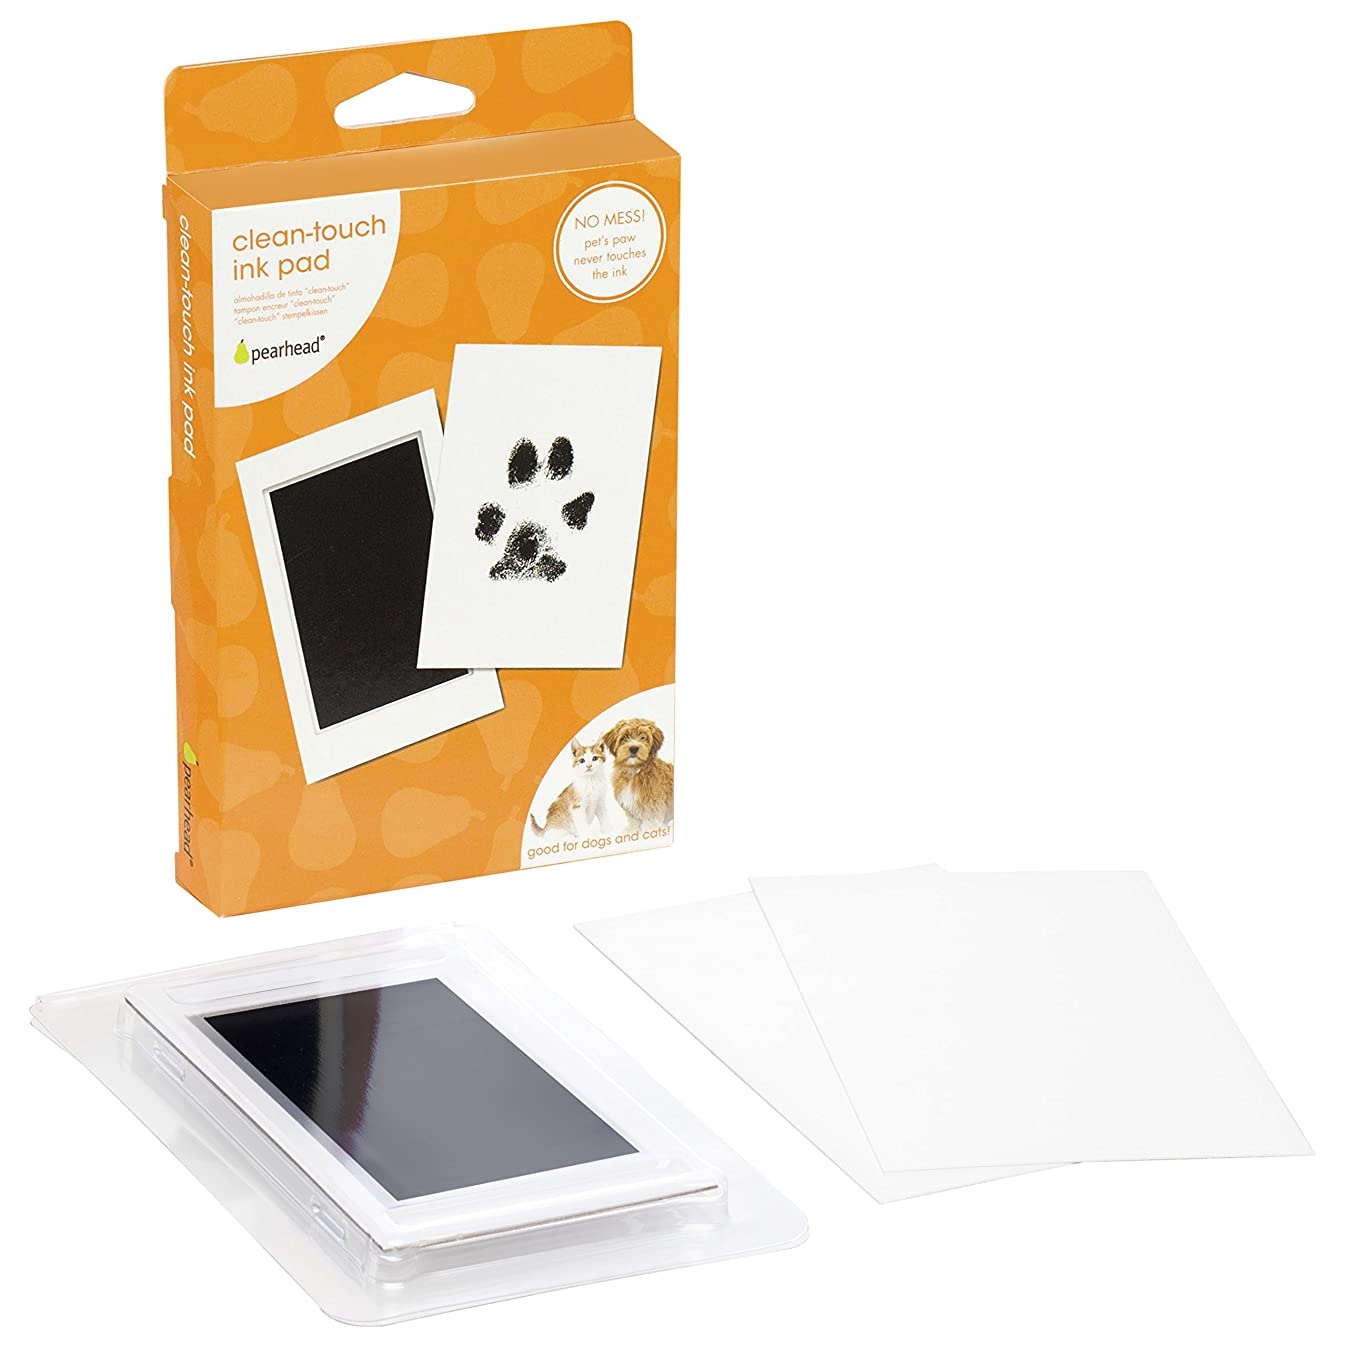 Pearhead Pet Photo Sharing Props, Create Keepsakes With Your Dog or Cat